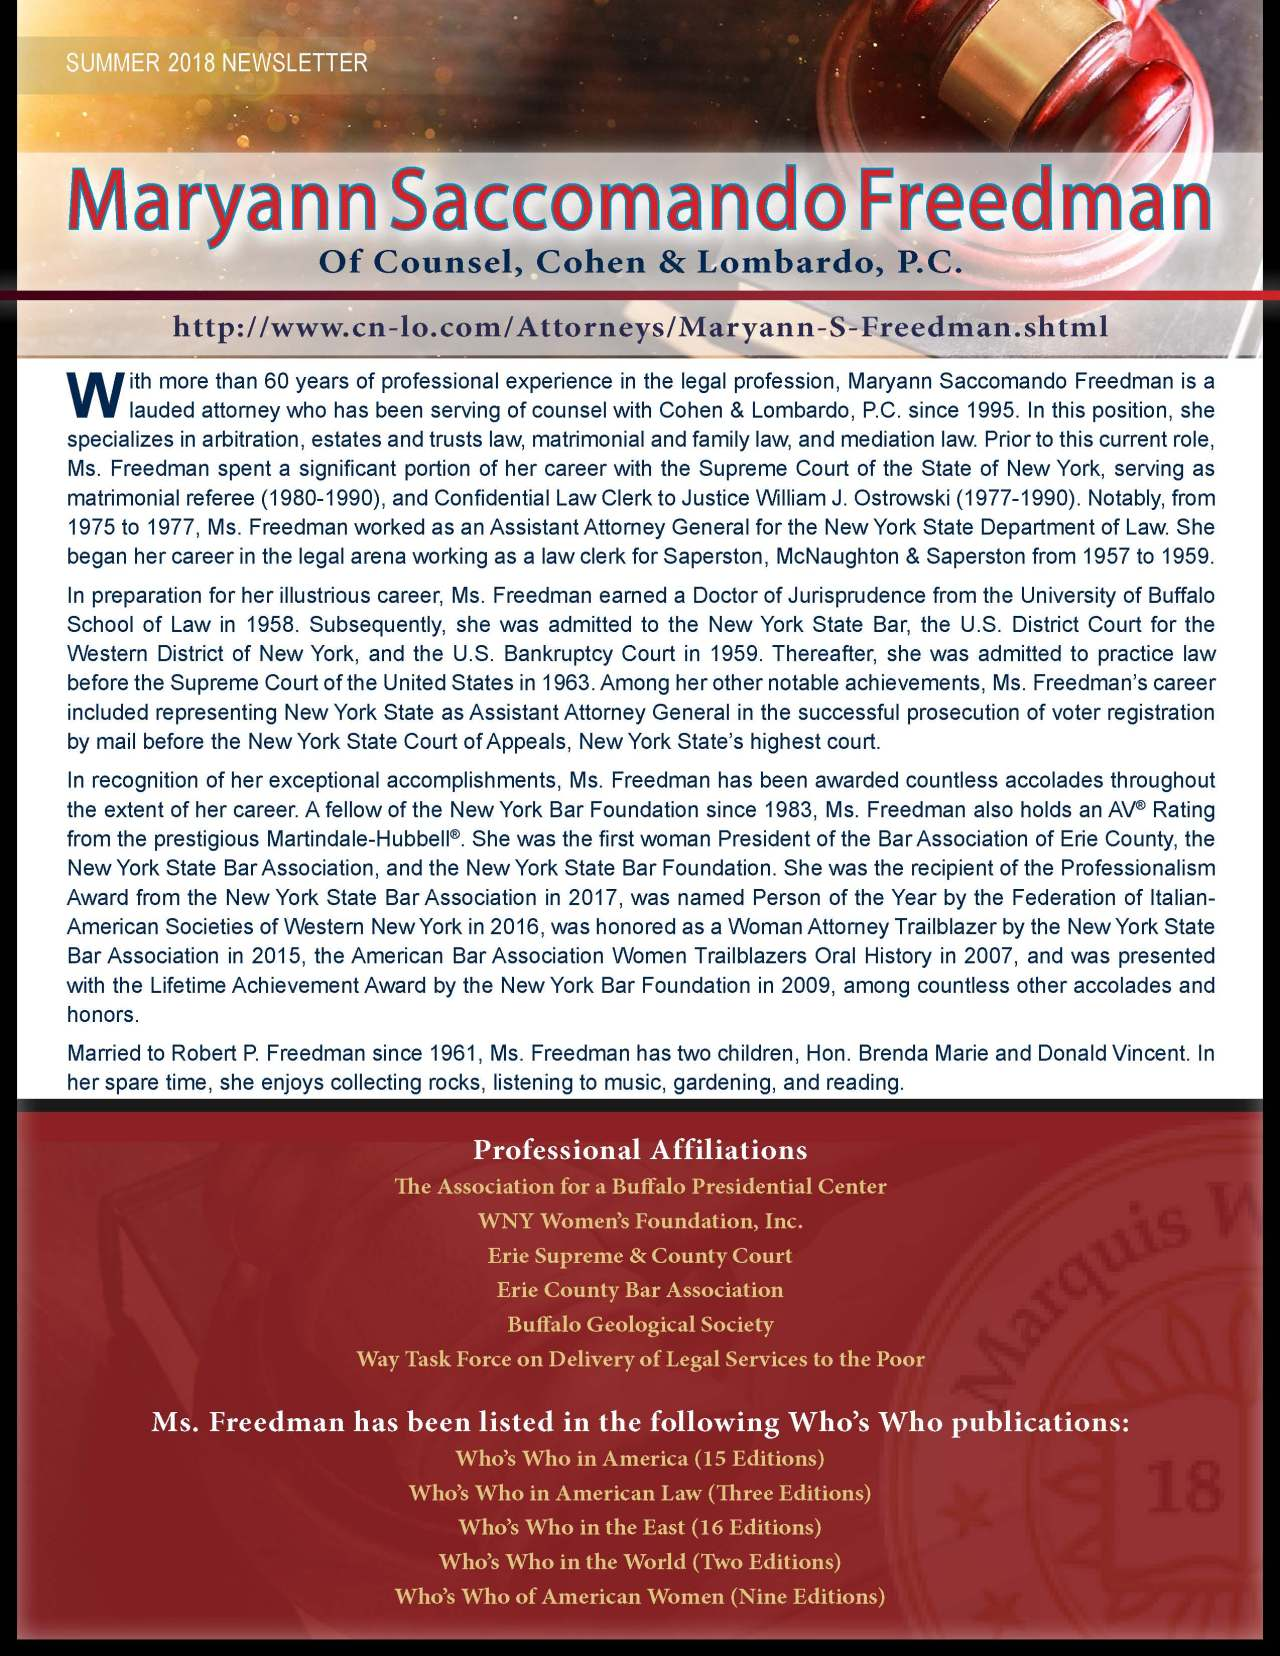 Freedman, Maryann 3699756_28432565 Newsletter REVISED.jpg